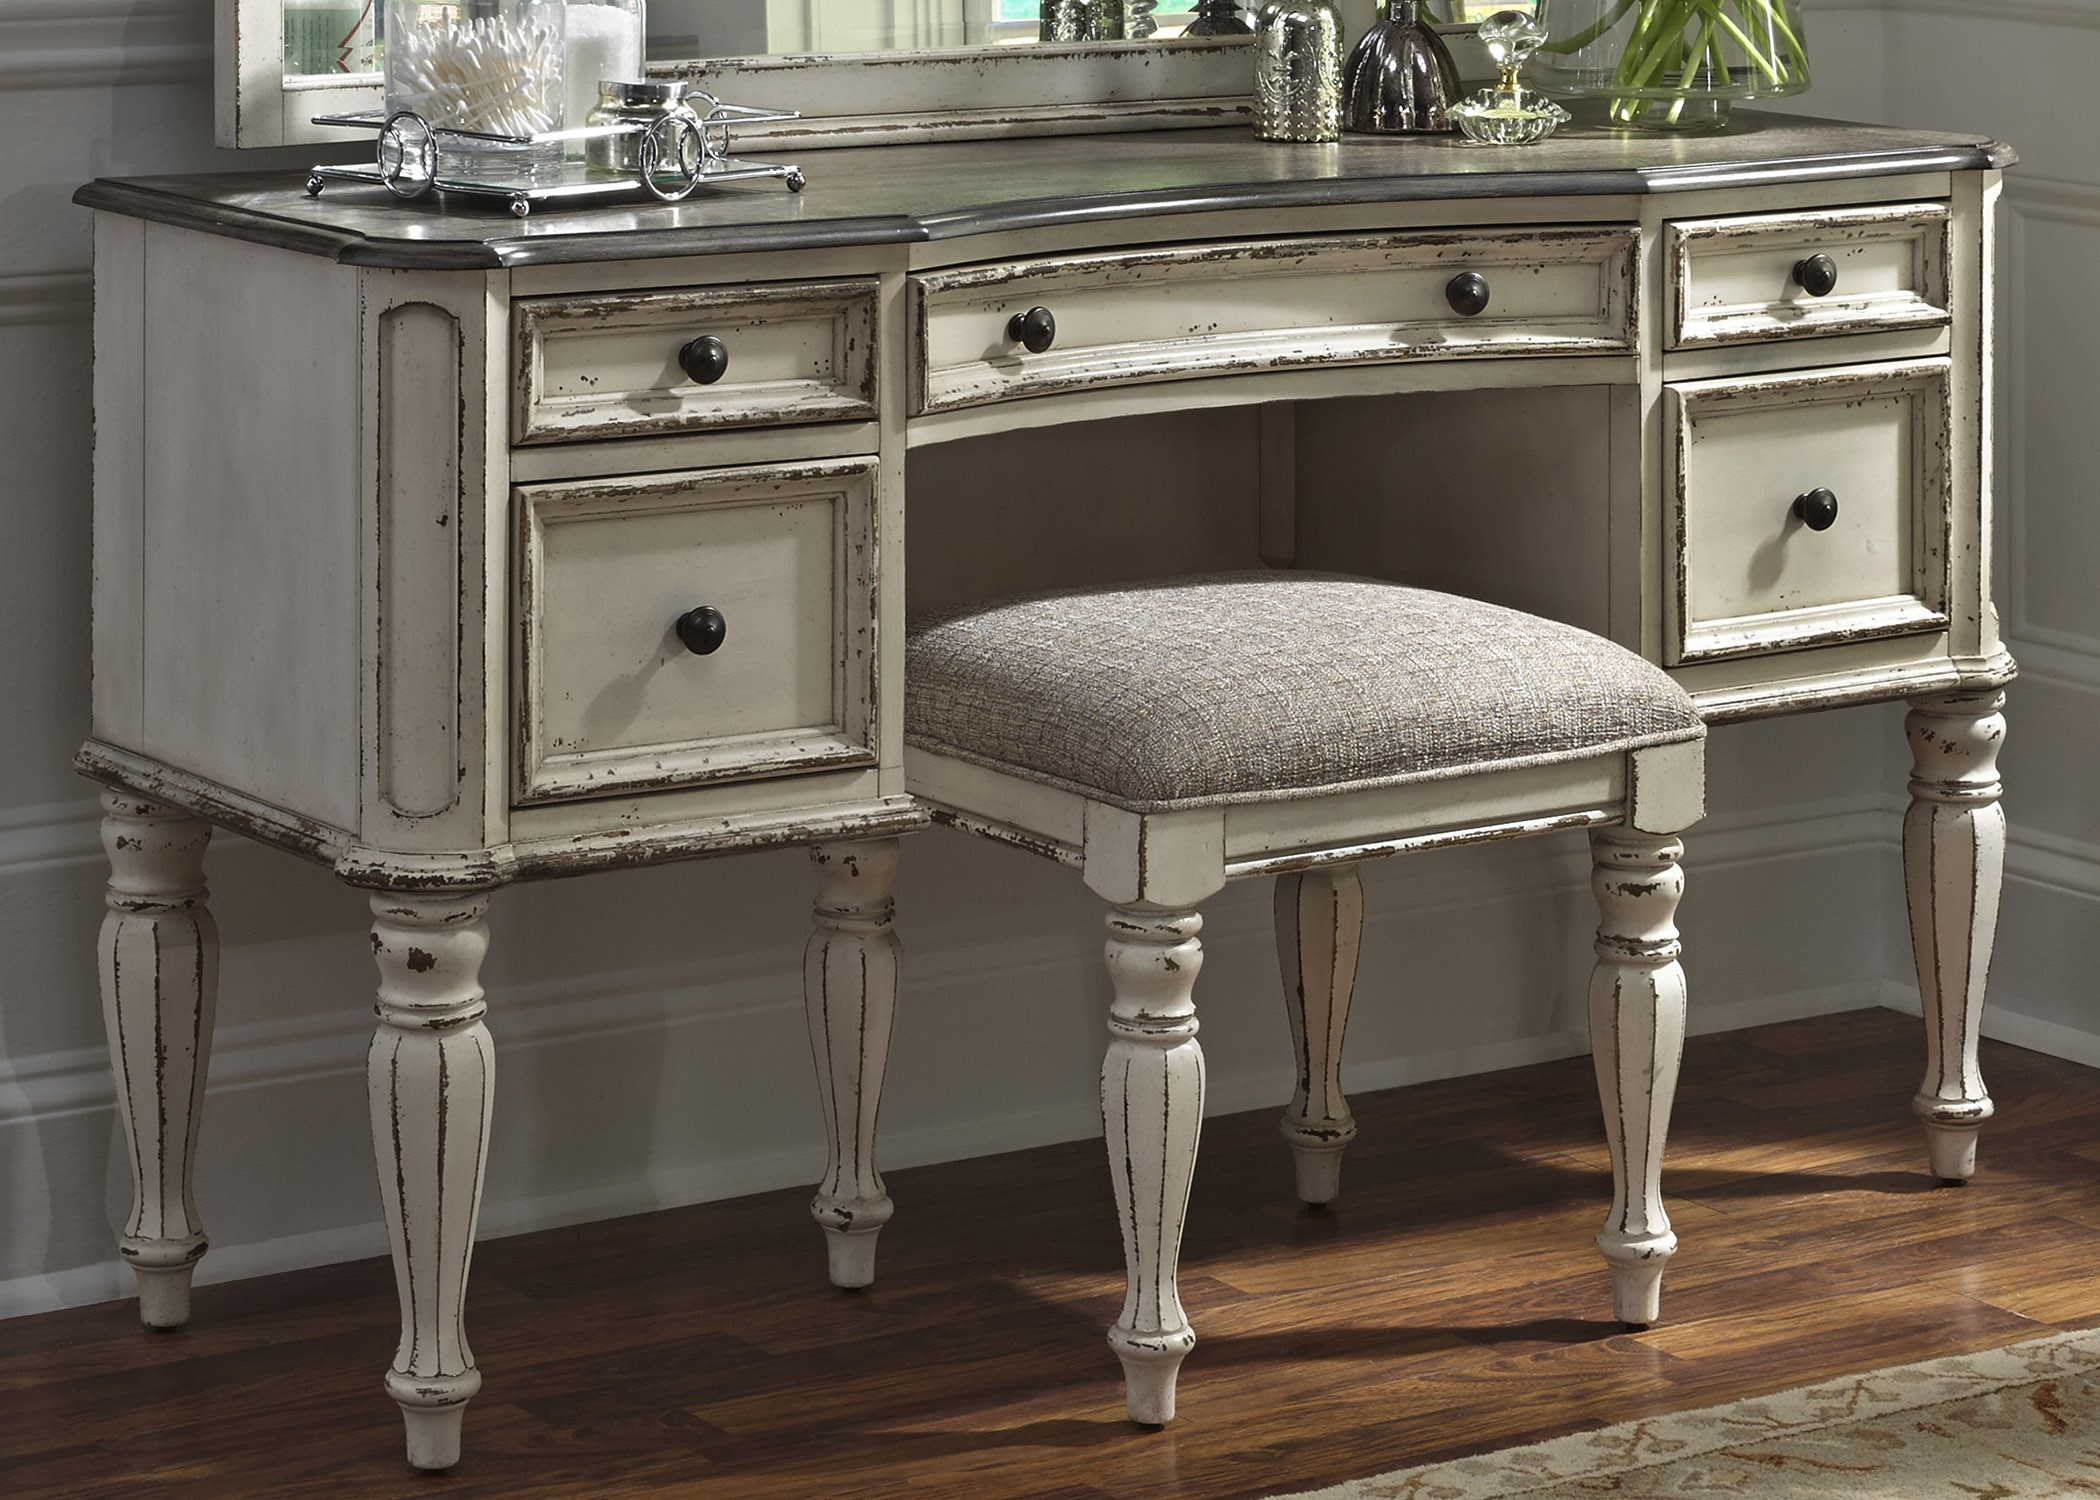 Magnolia Manor Antique Vanity Desk From Liberty